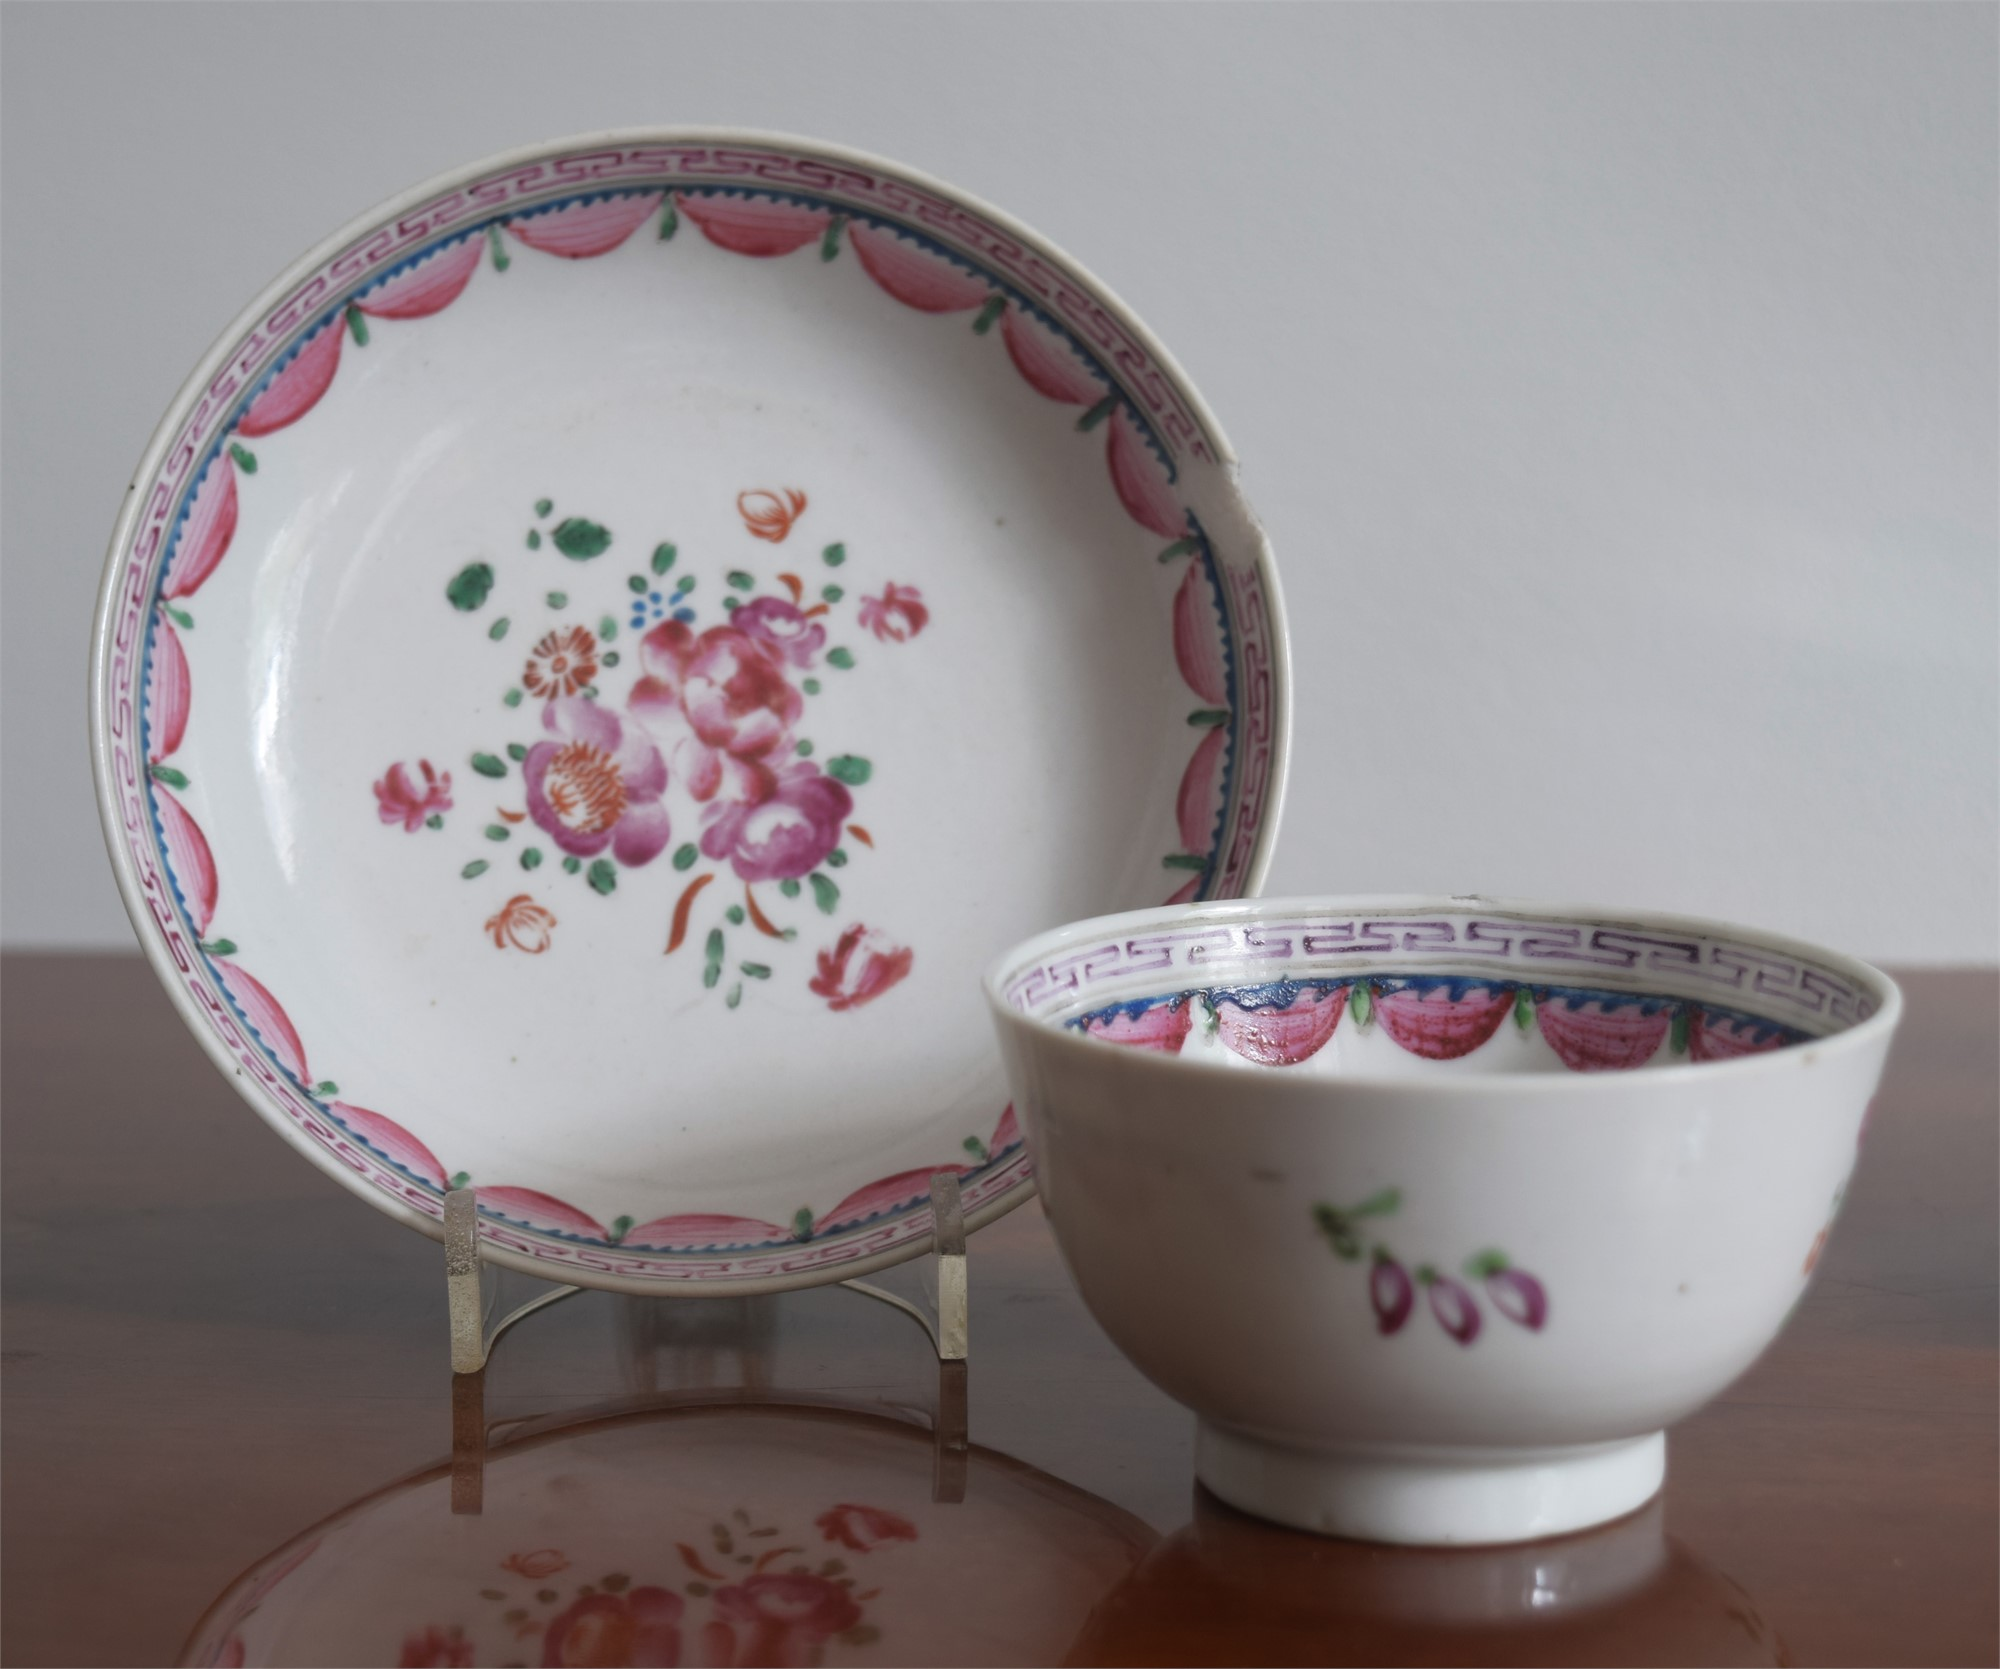 A FAMILLE-ROSE CUP AND SAUCER IN THE ENGLISH STYLE